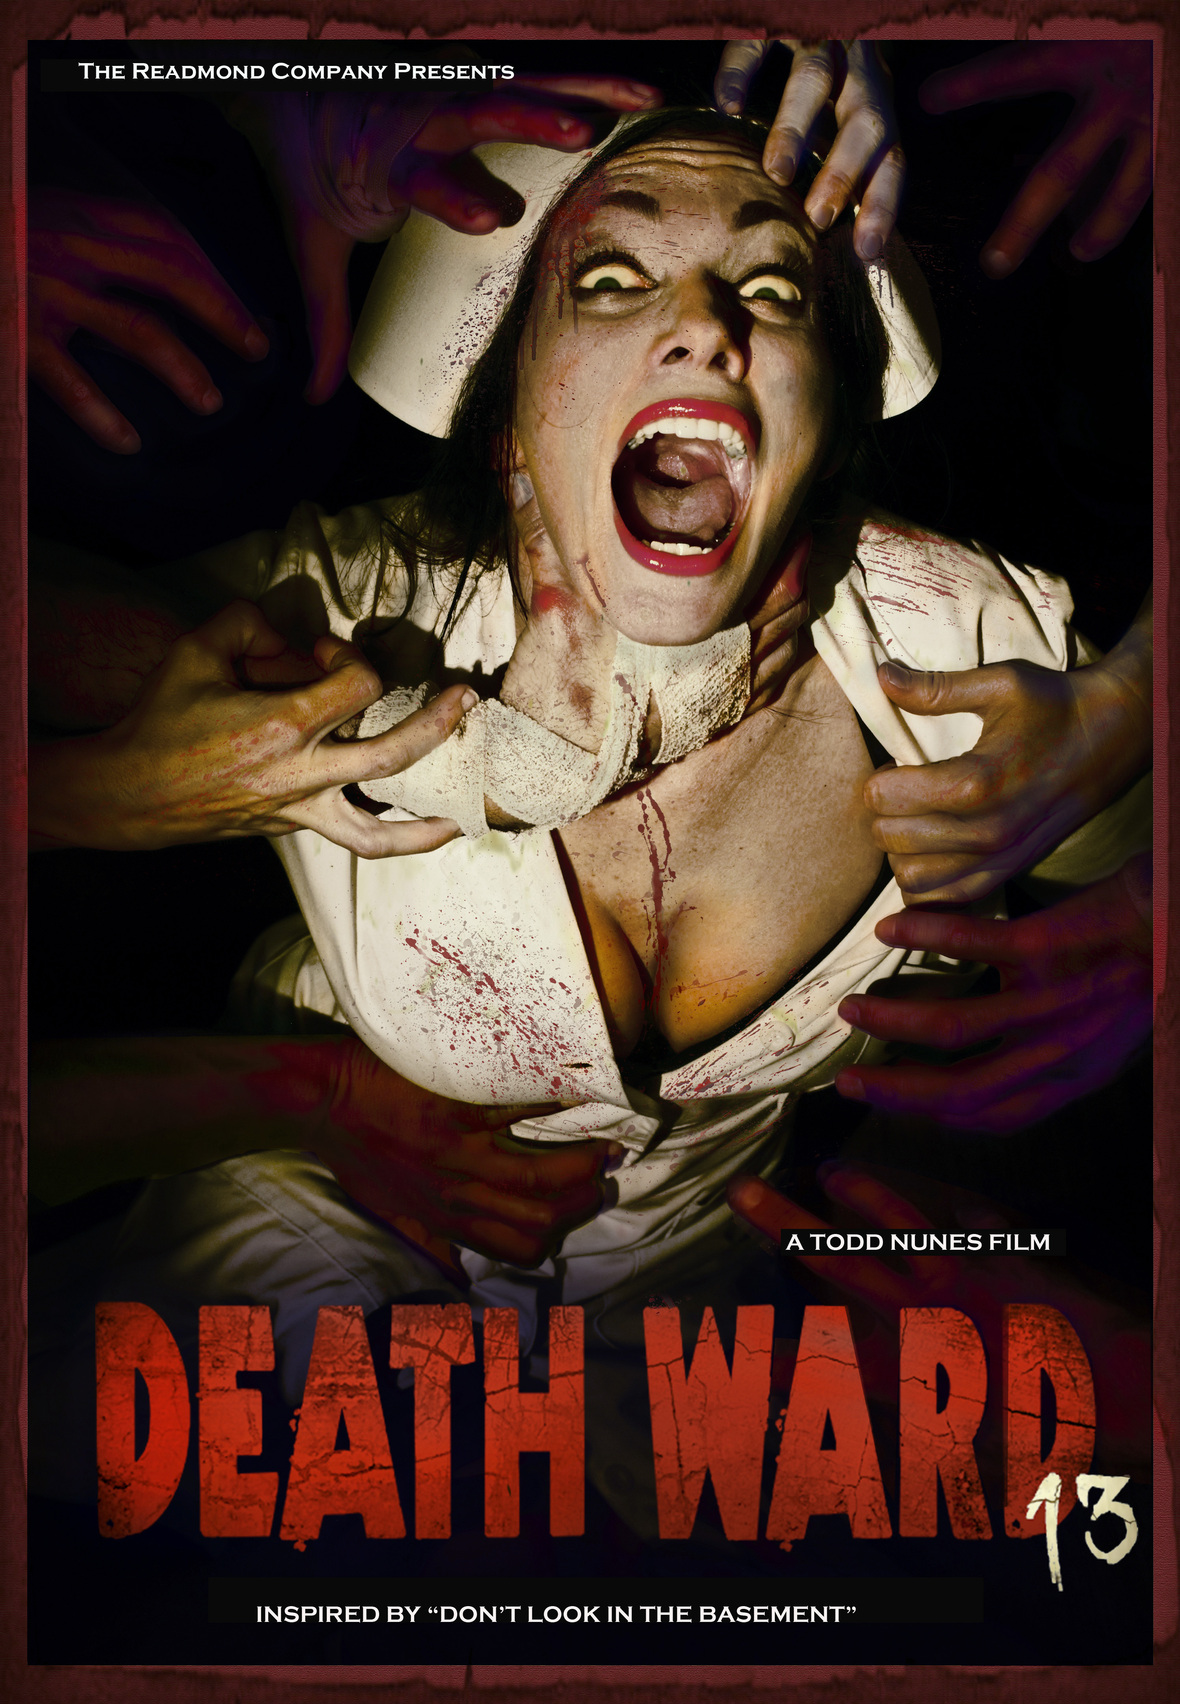 Misfits Guitarist Doyle to star in Death Ward13